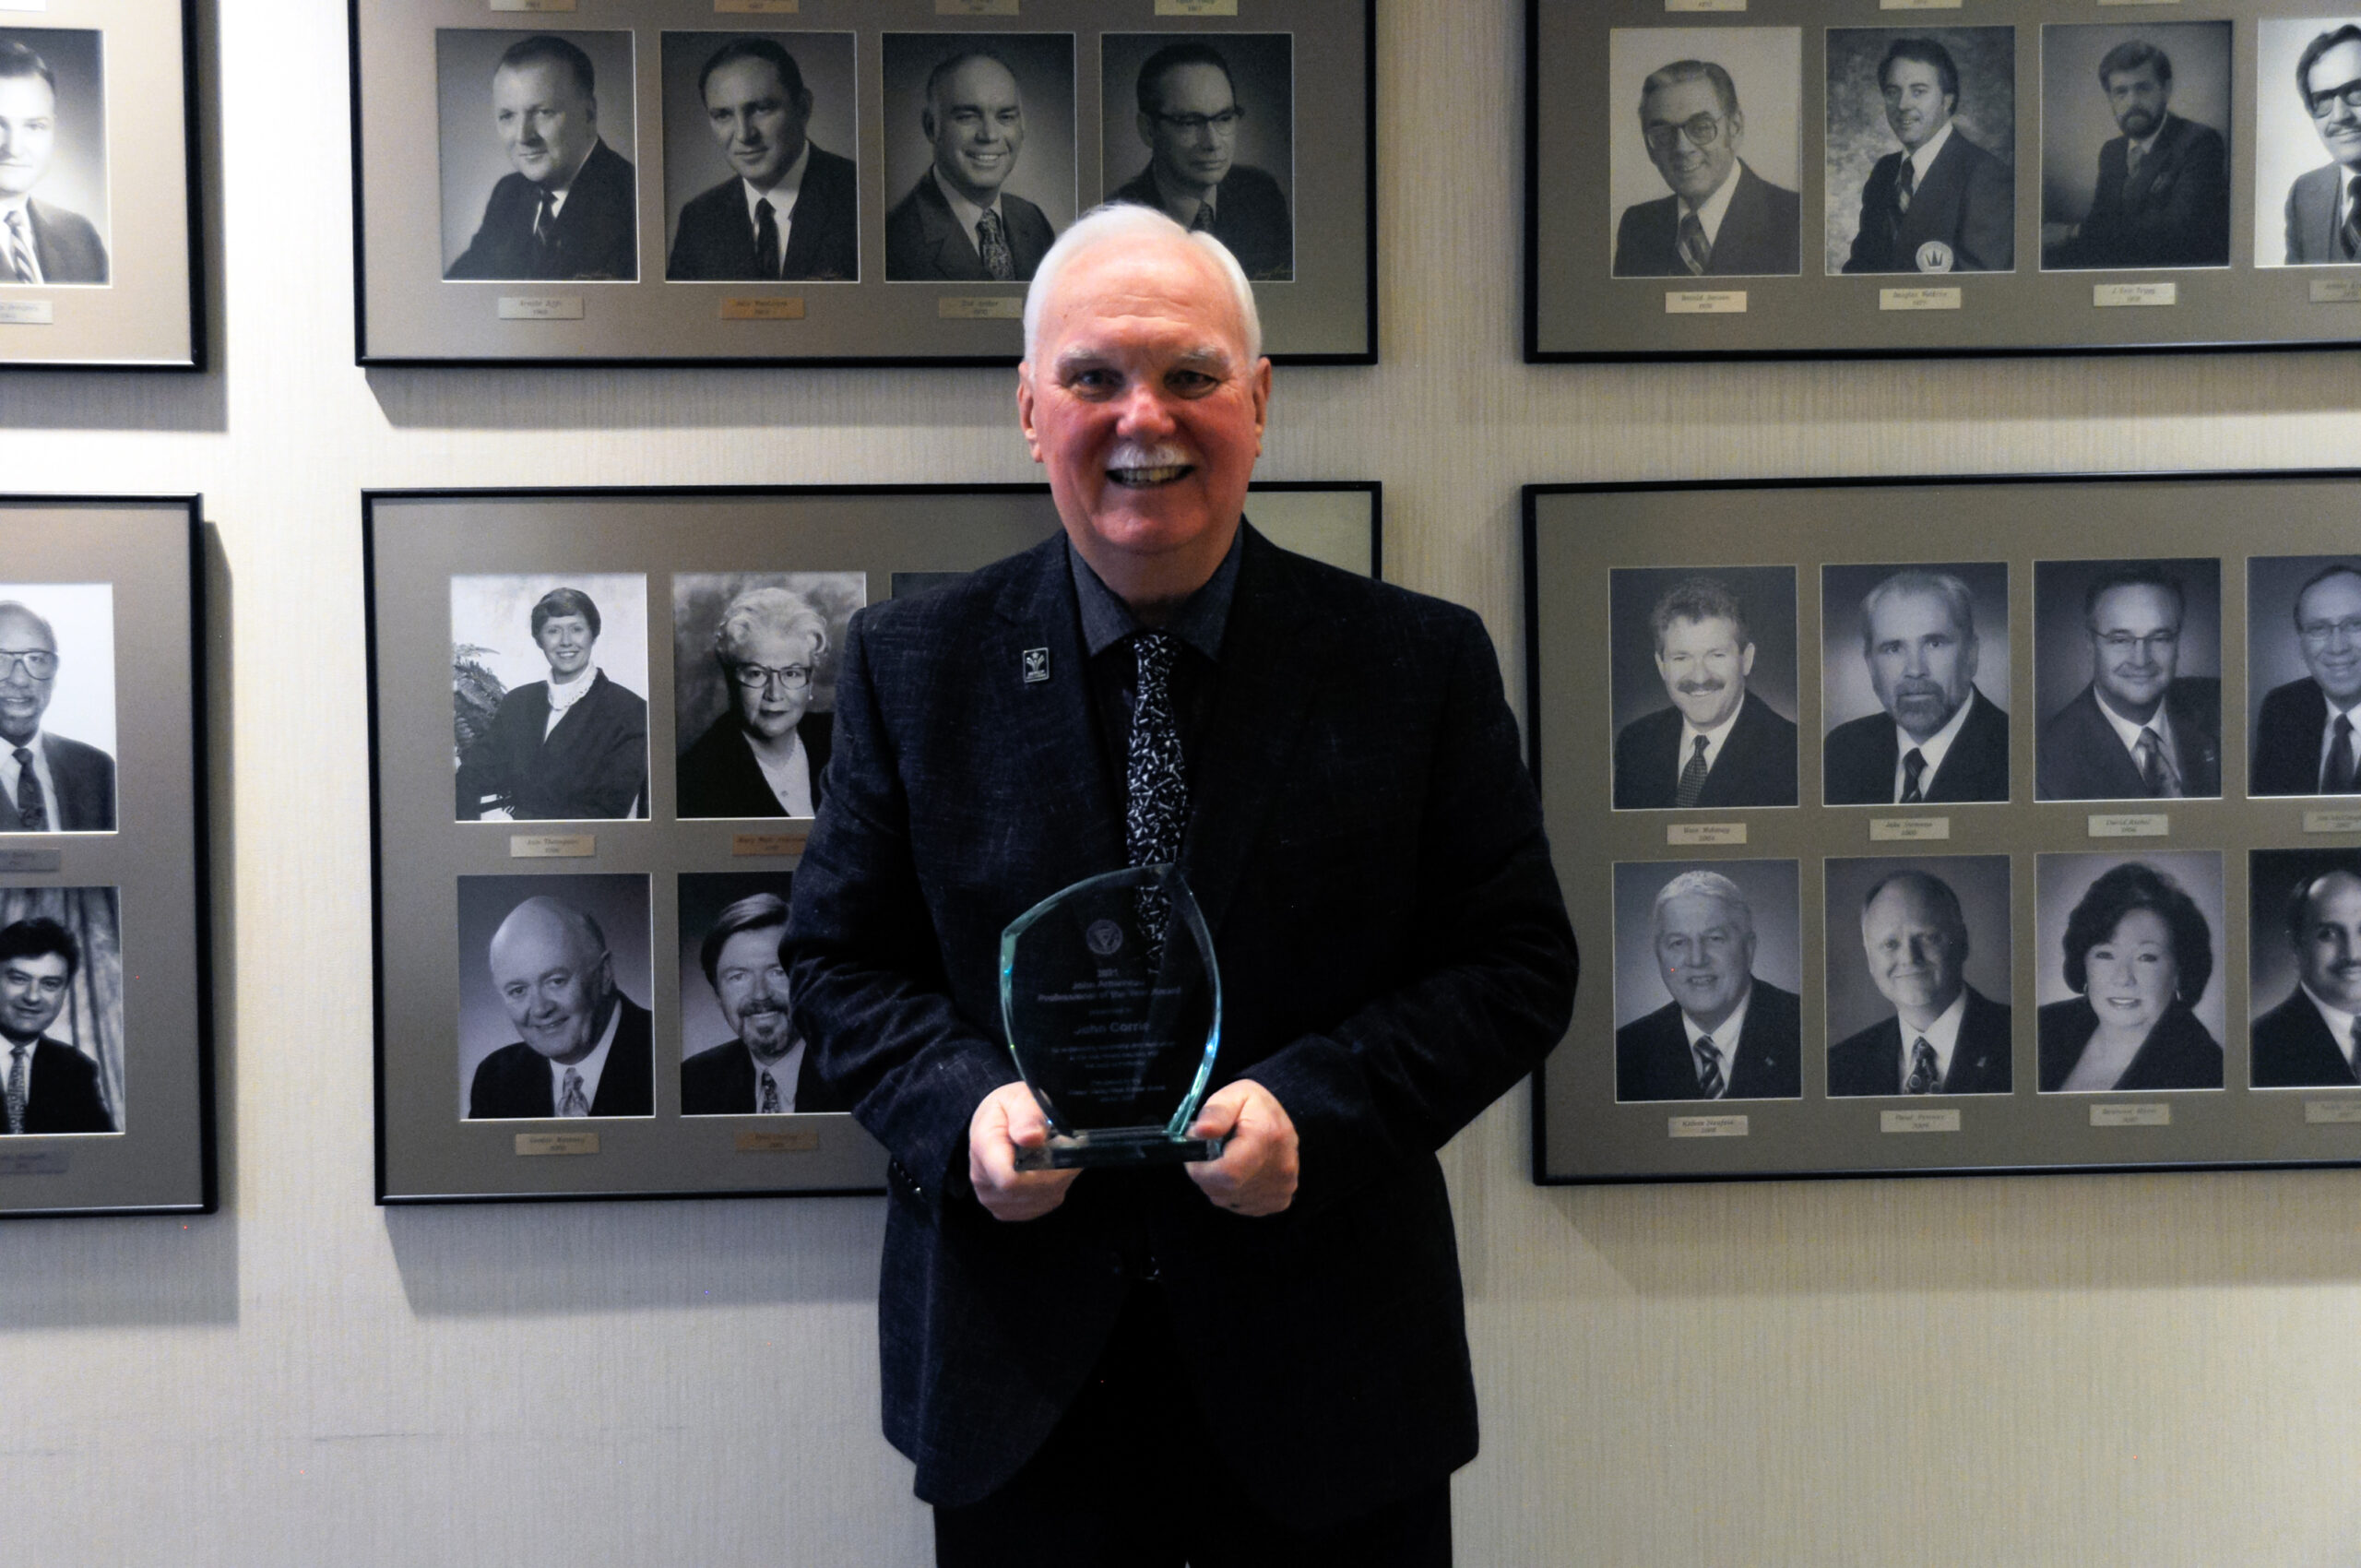 Five decades and counting! Meet FVREB's 2021 Professional of the Year